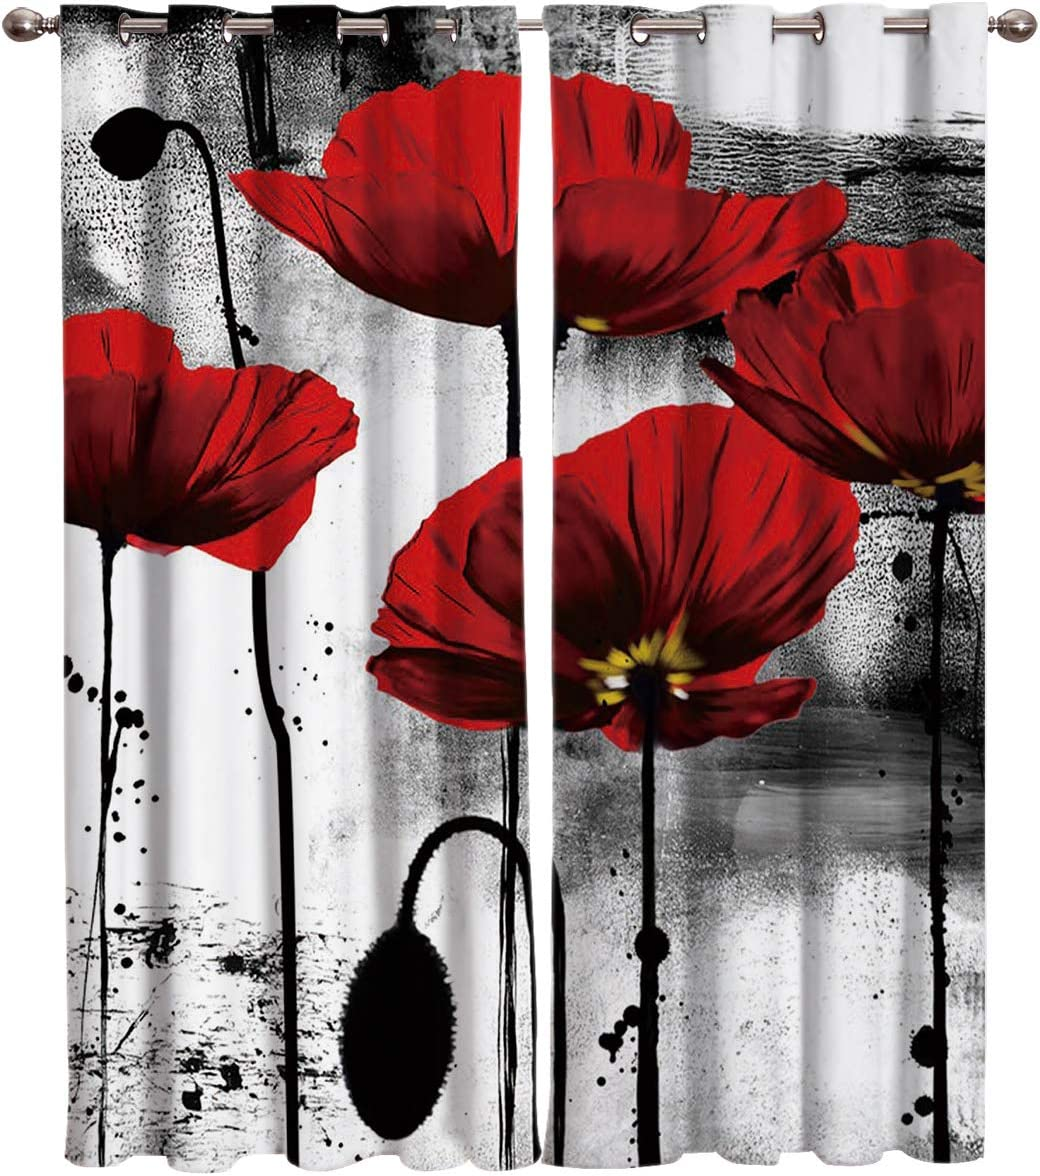 """T&H Home Vintage Curtains, Red Poppy Flower Ink Painting Window Curtain, 2 Panel Curtains for Sliding Glass Door Bedroom Living Room, 80"""" W by 84"""" L"""